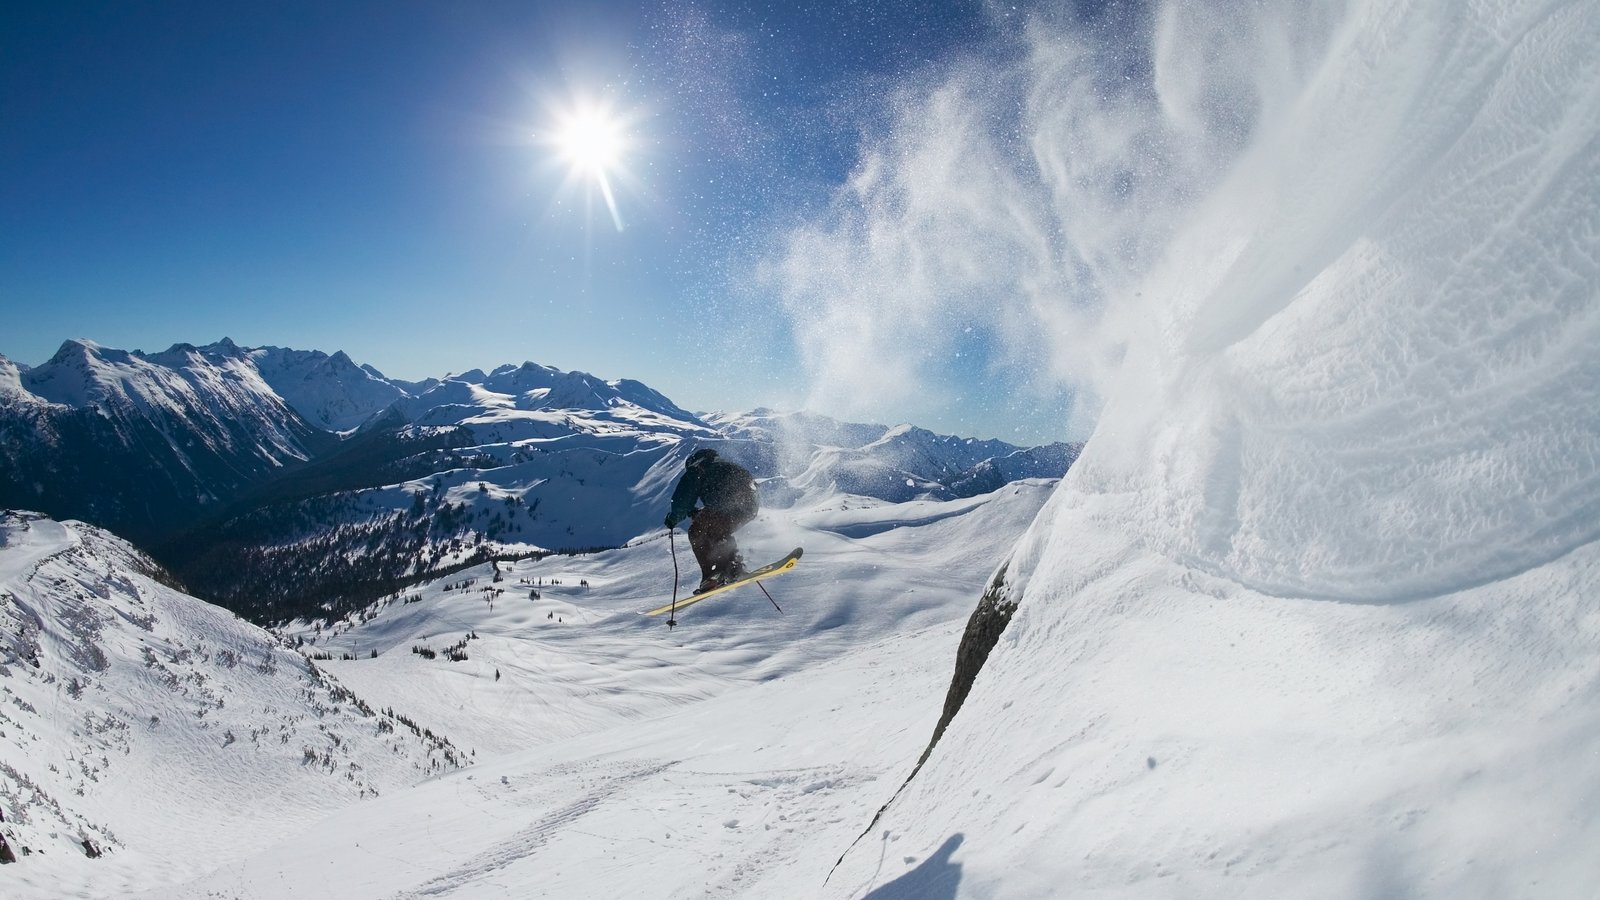 Whistler Blackcomb Ski Resort which includes a sporting event, snow skiing and mountains